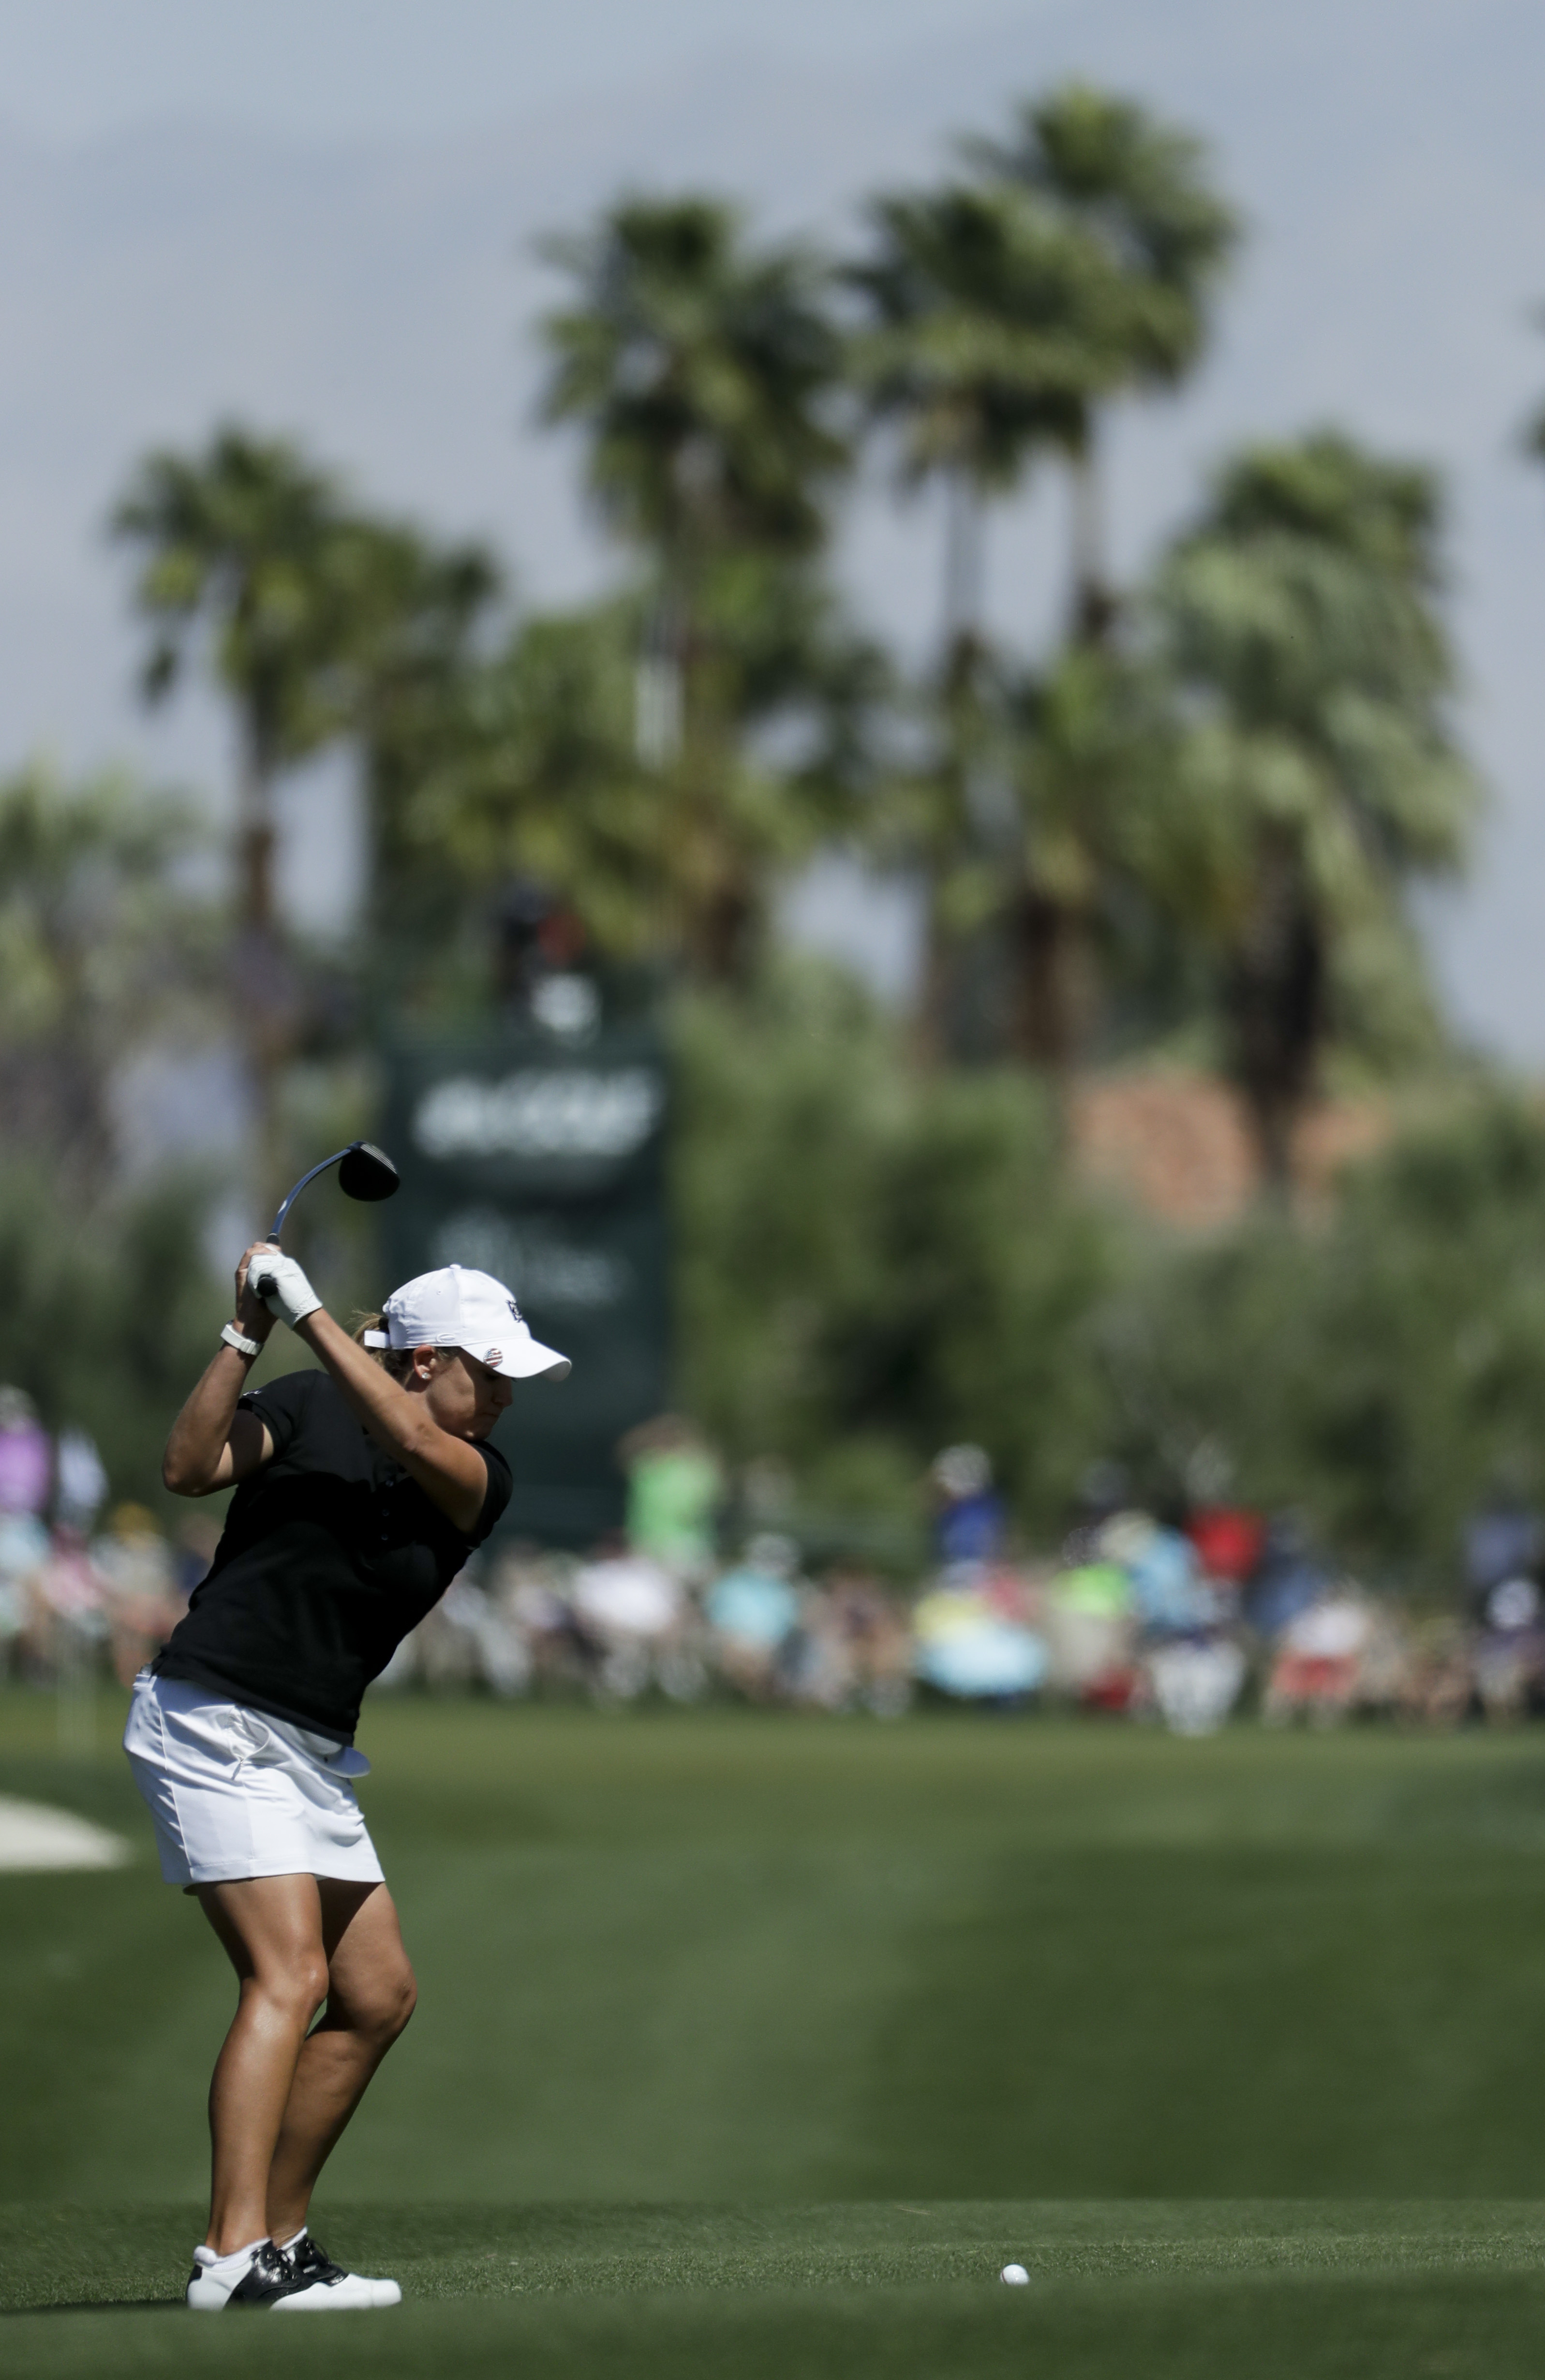 Cristie Kerr hits from the fairway on the ninth hole during the second round of the LPGA Tour ANA Inspiration golf tournament at Mission Hills Country Club Friday, March 31, 2017 in Rancho Mirage, Calif. (AP Photo/Chris Carlson)